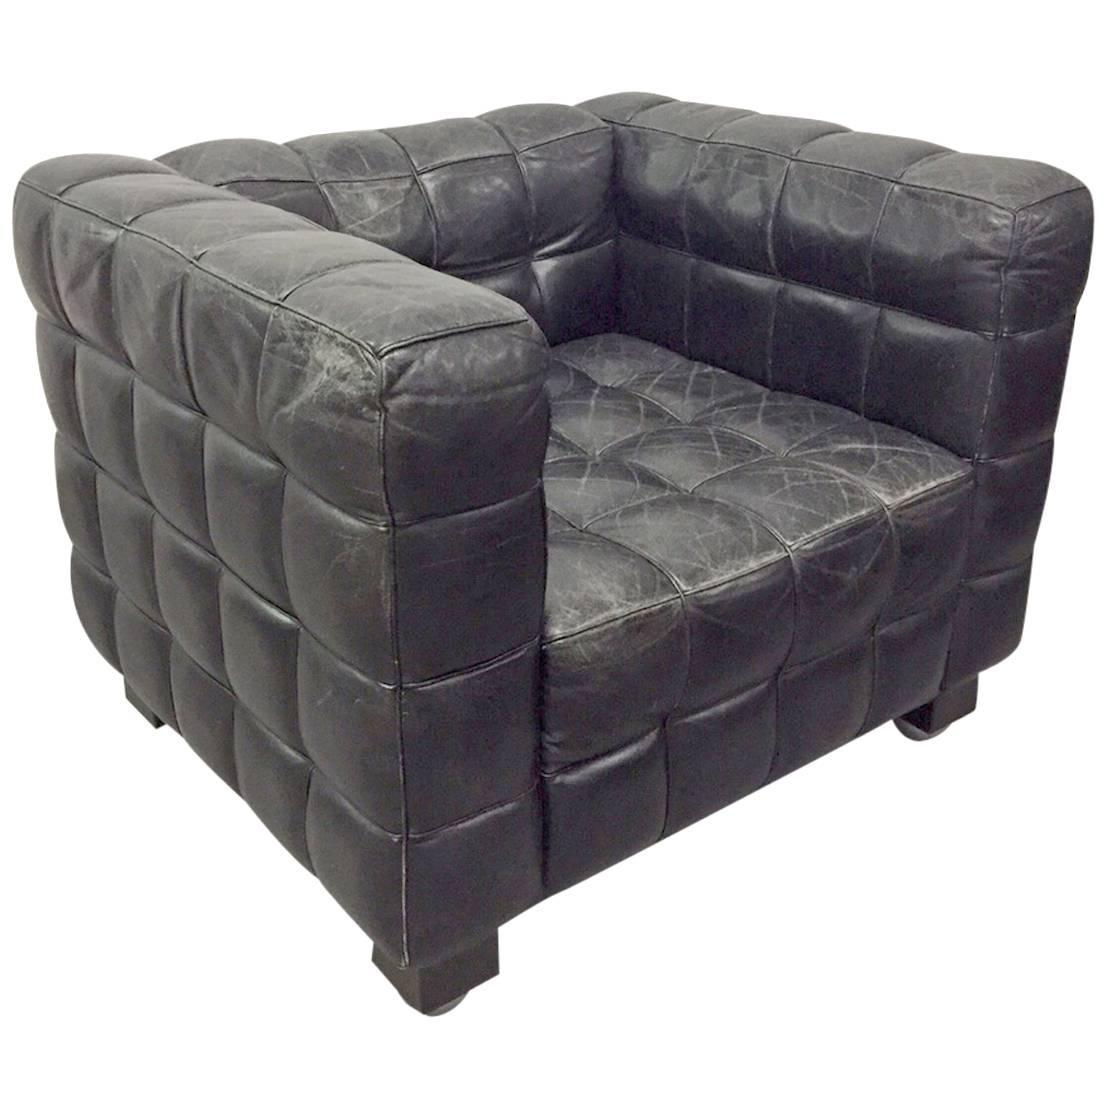 Tufted Leather Wittmann Kubus Lounge Chair by Josef Hoffmann at 1stdibs